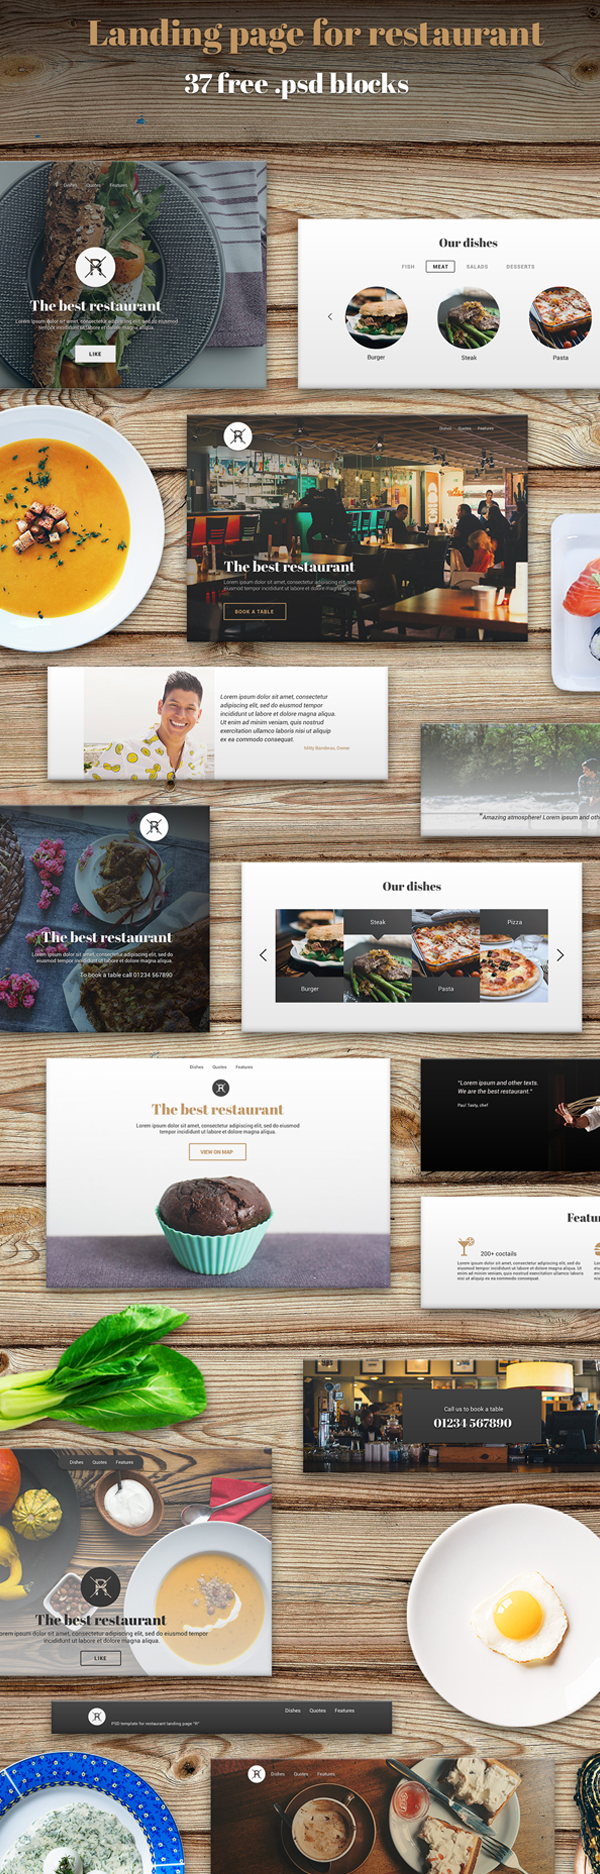 Landing Page for Restaurant - 37 Free PSD Blocks